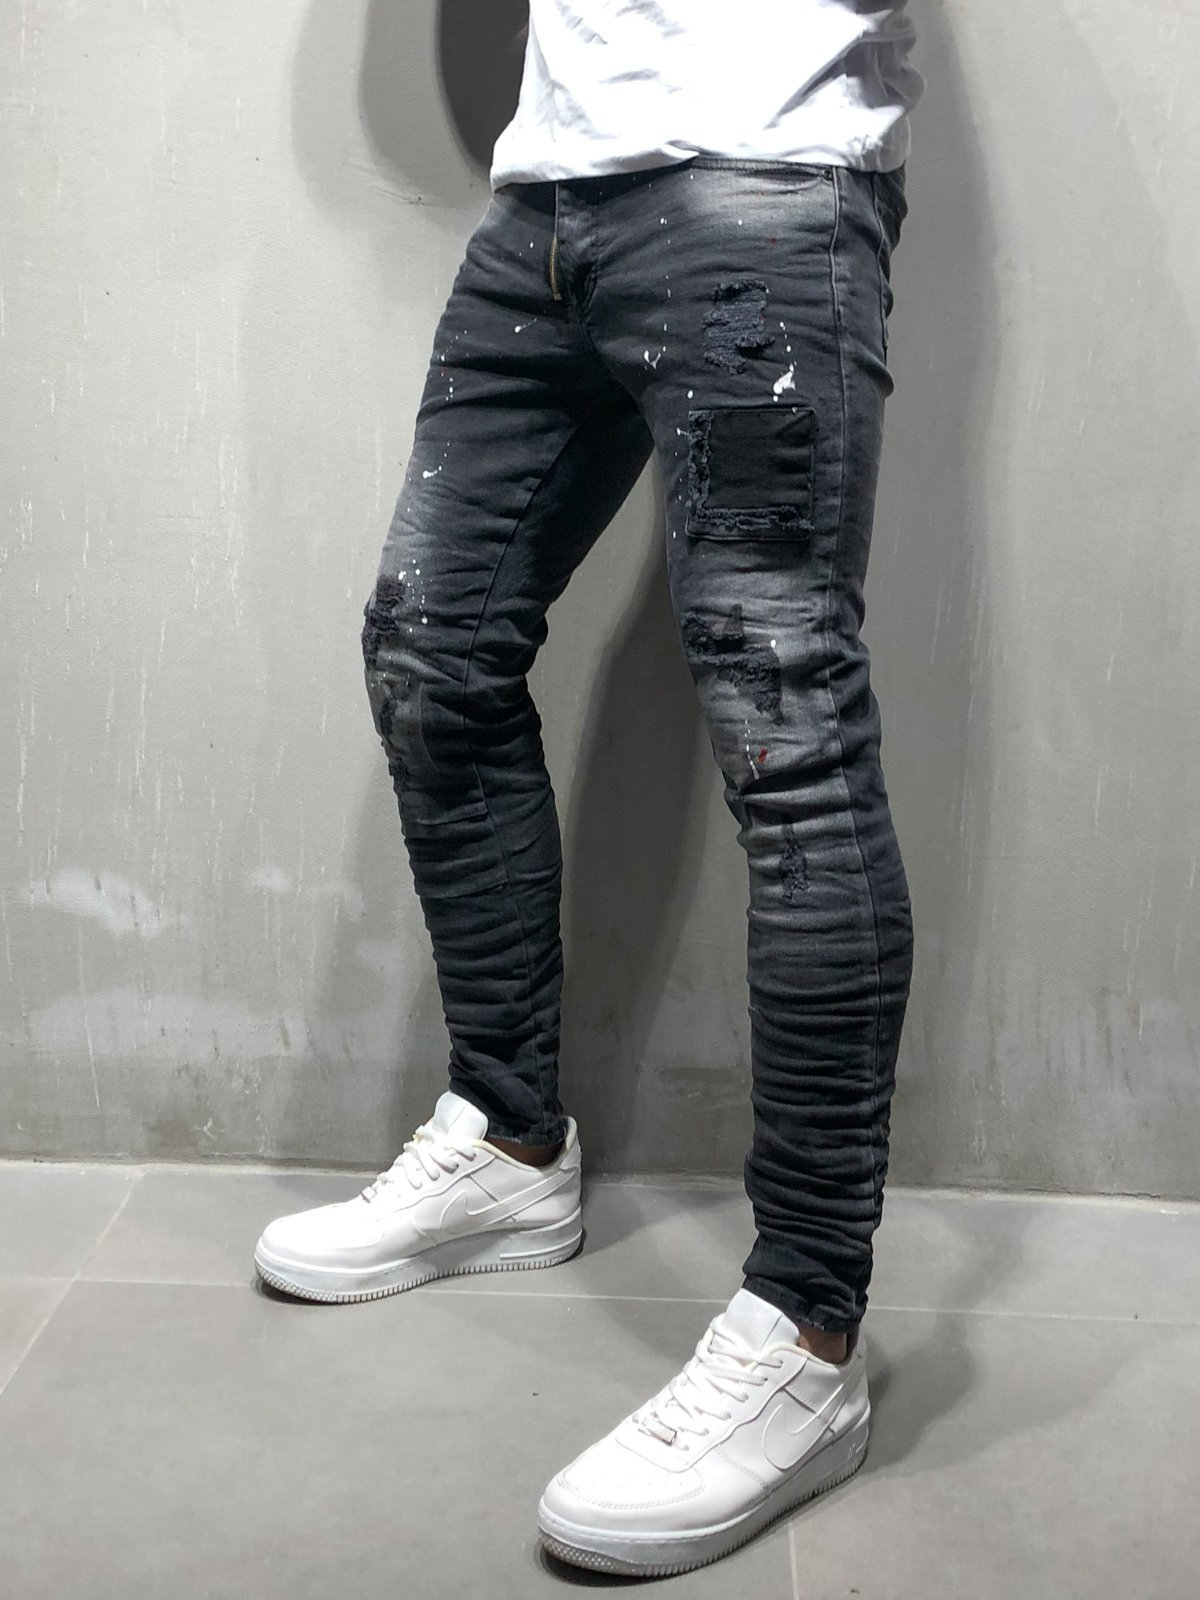 Black Ripped Jeans Skinny 4084 is part of Ripped jeans men - ITEM DESCRIPTIONS  Jeans  Black Ripped Patched Zipper detail next to fastening Skinny fit 5 Standard Pockets Button Fastening 98% Cotton and 2% Elastane Item weight 616 gr MODEL'S SIZE  Height 186 Weight 81 Size 32Why MONOCLOTH  13 DAYS EXPRESS DELIVERY We ship packages with express and deliver fast  RE